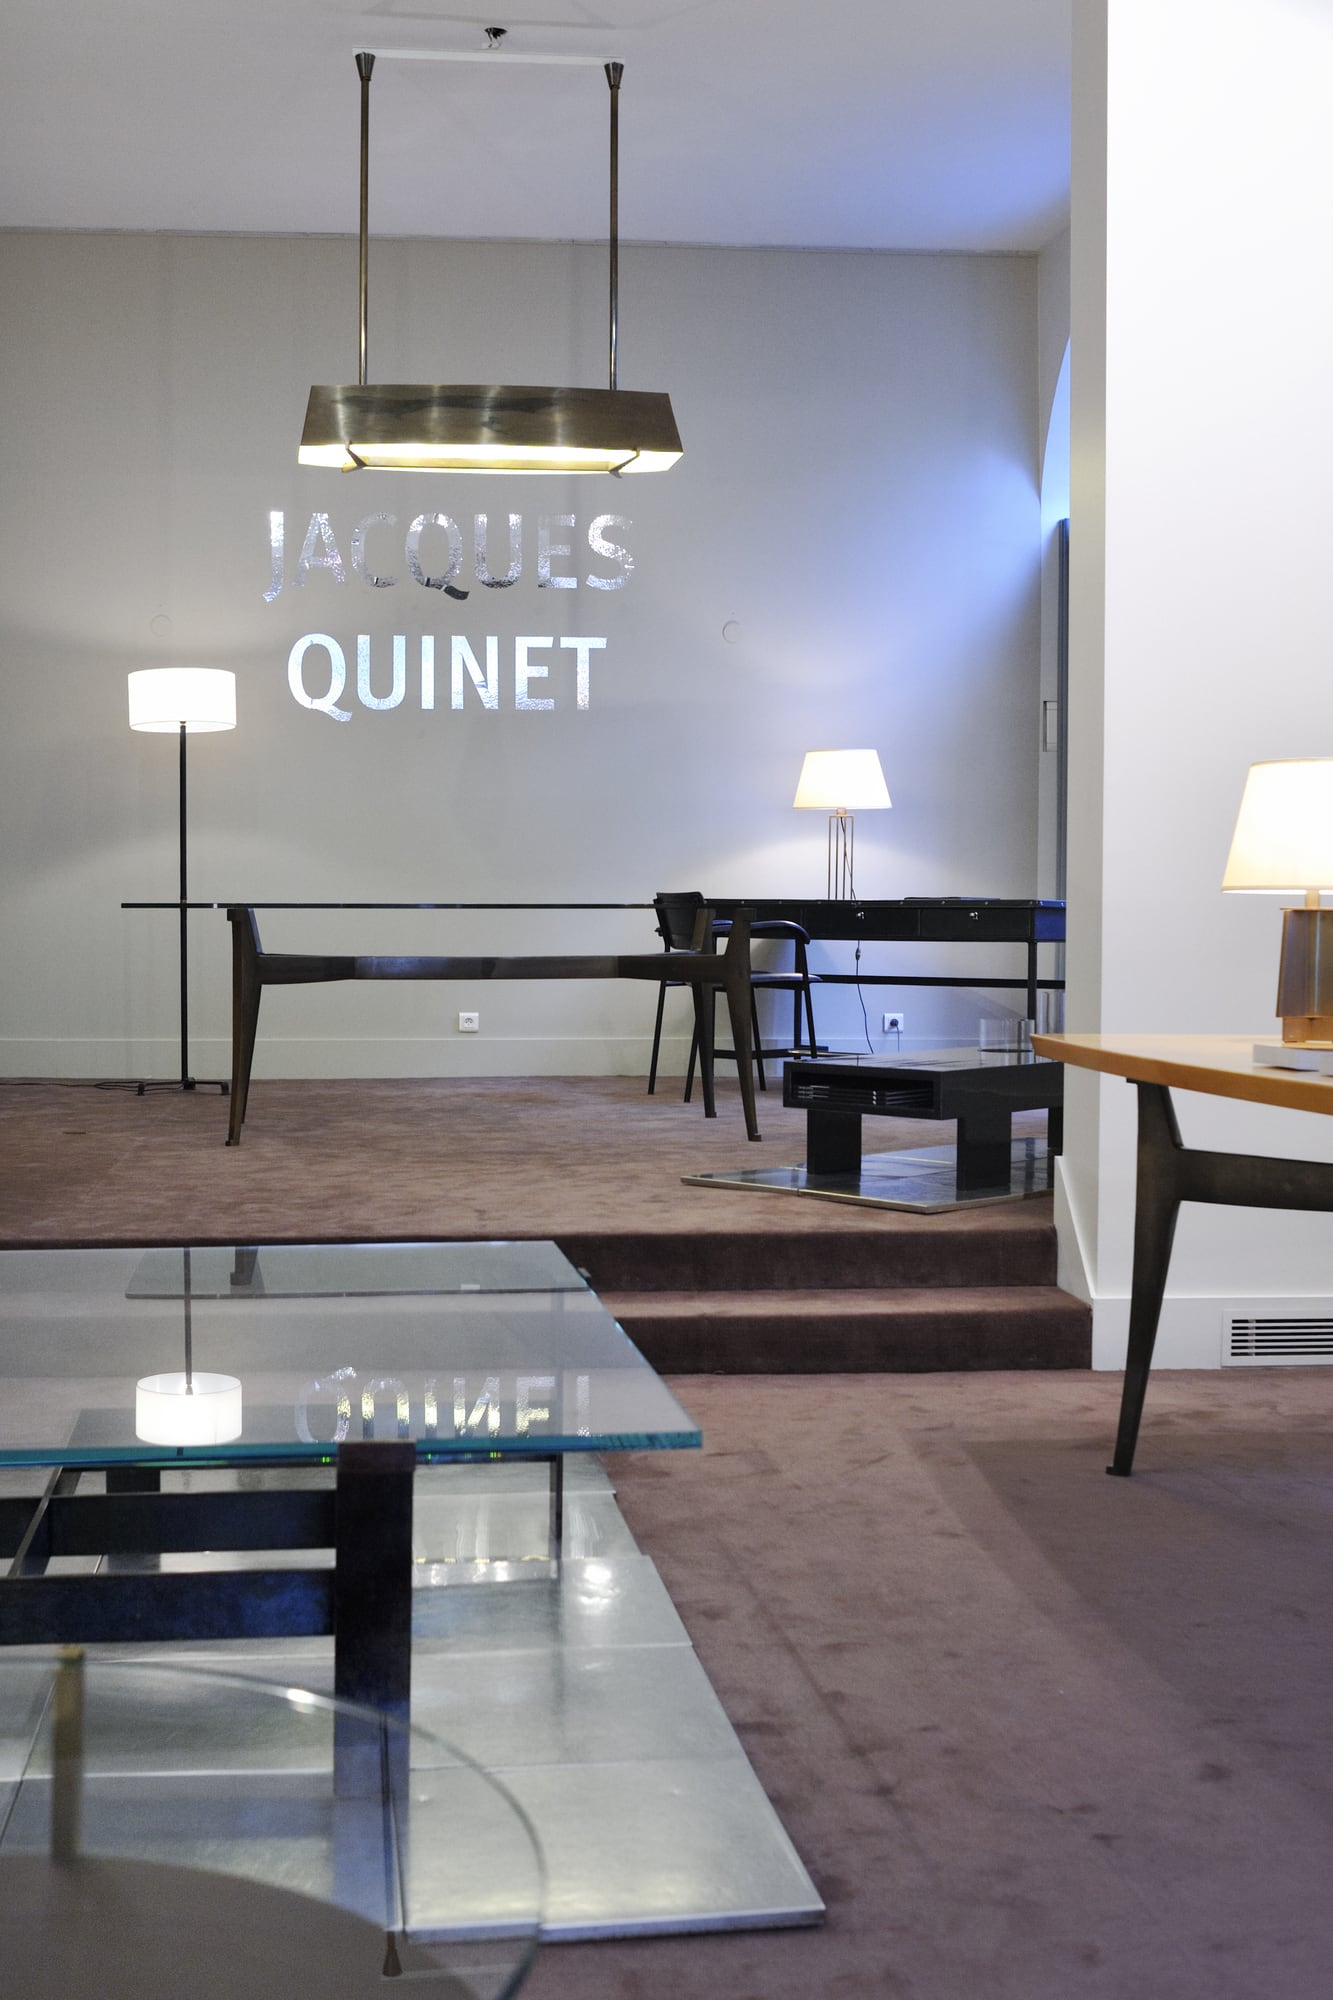 JACQUES QUINET, Galerie Chastel-Maréchal, from september 9th to octobre 18th, 2008